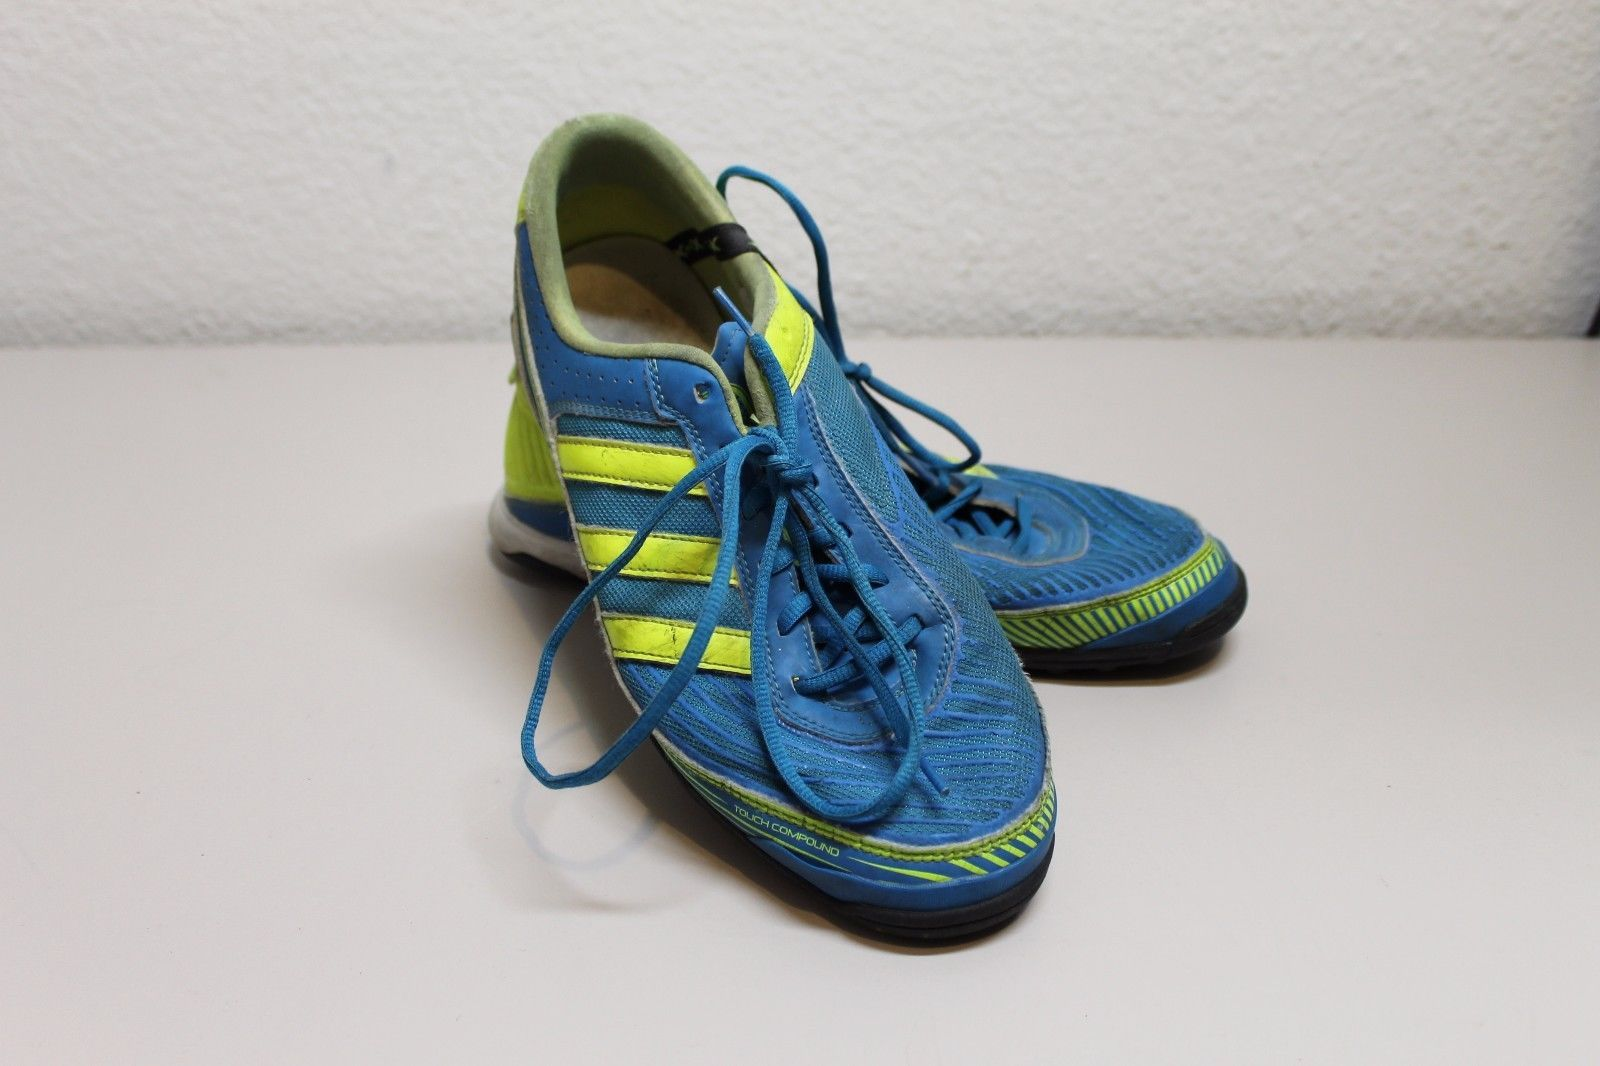 adidas 600001 running shoe Blue Green chartreuse used